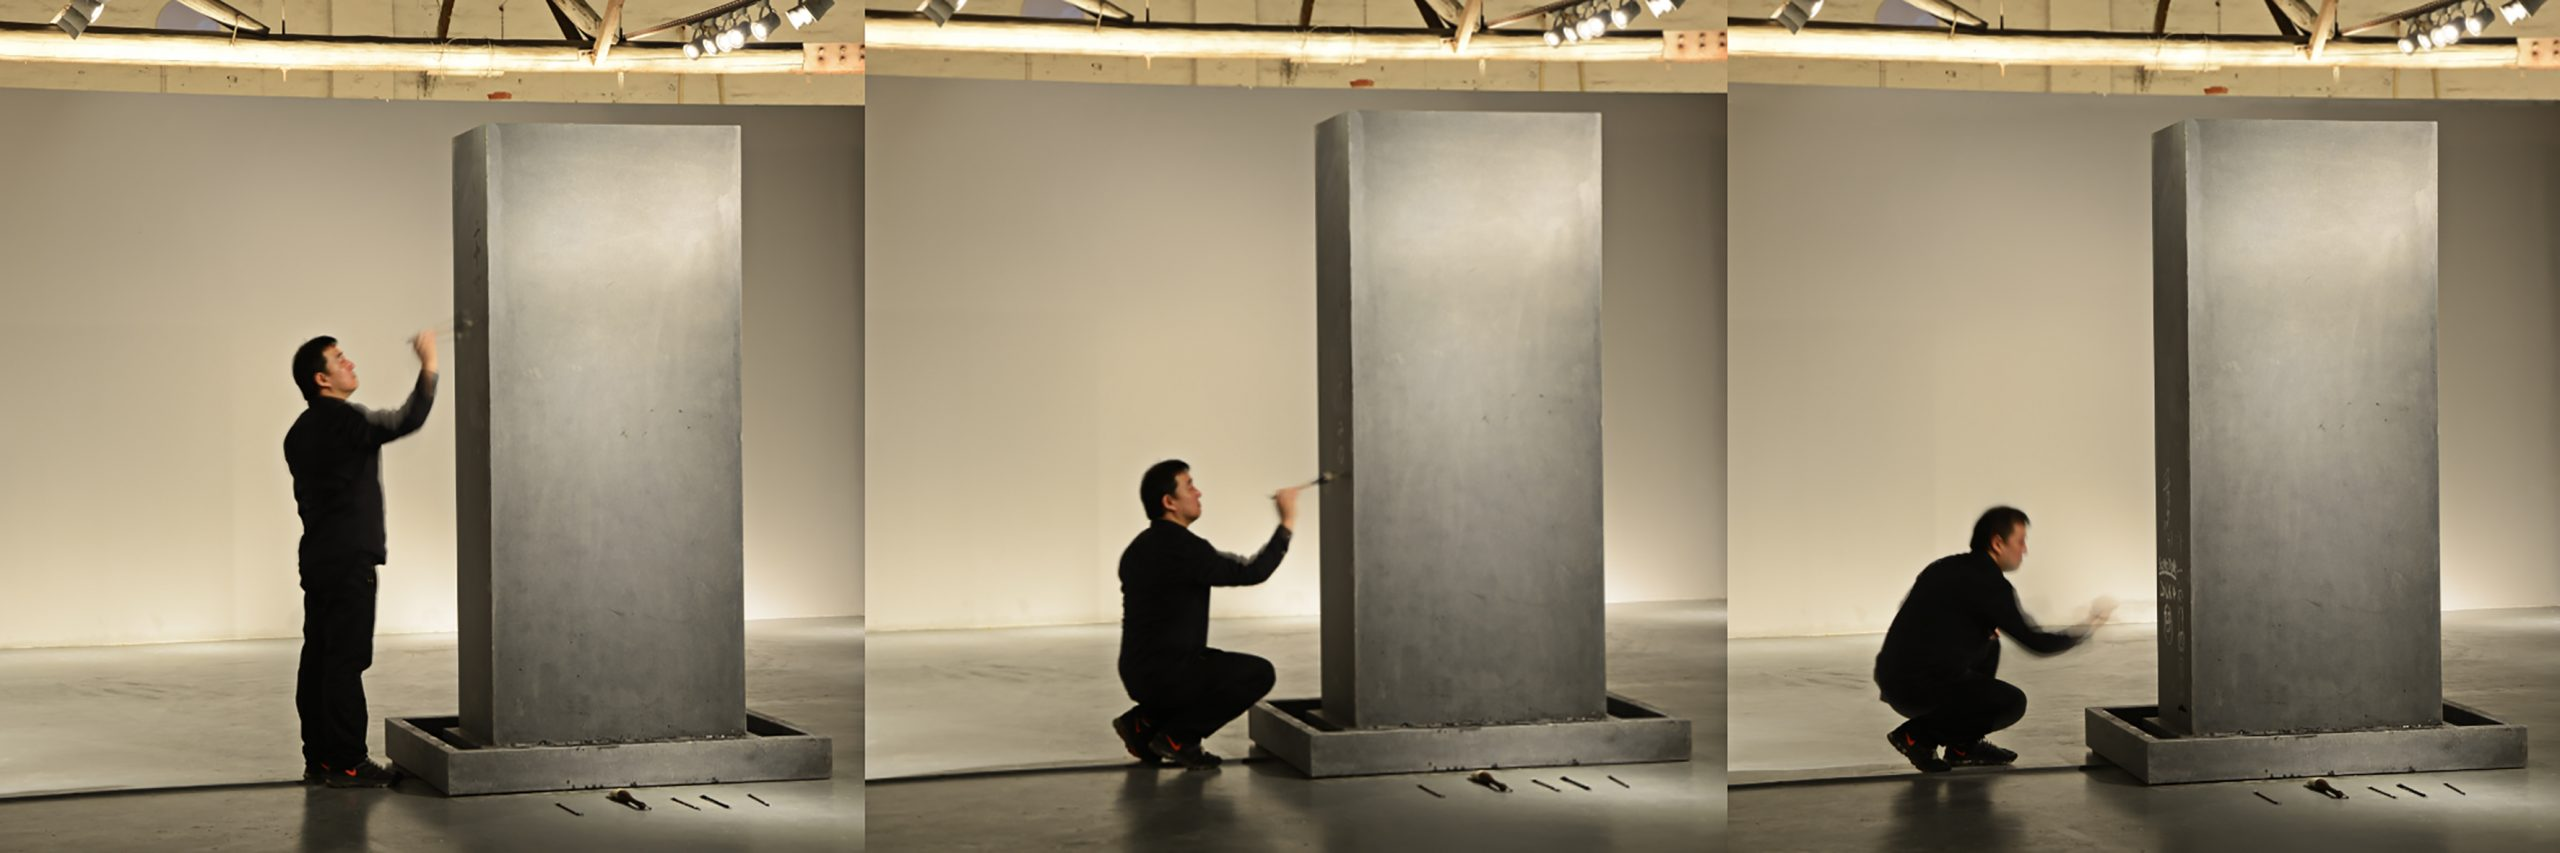 Song Dong painting in water on his work Traceless Stele, 2016. Photo ©️ Song Dong